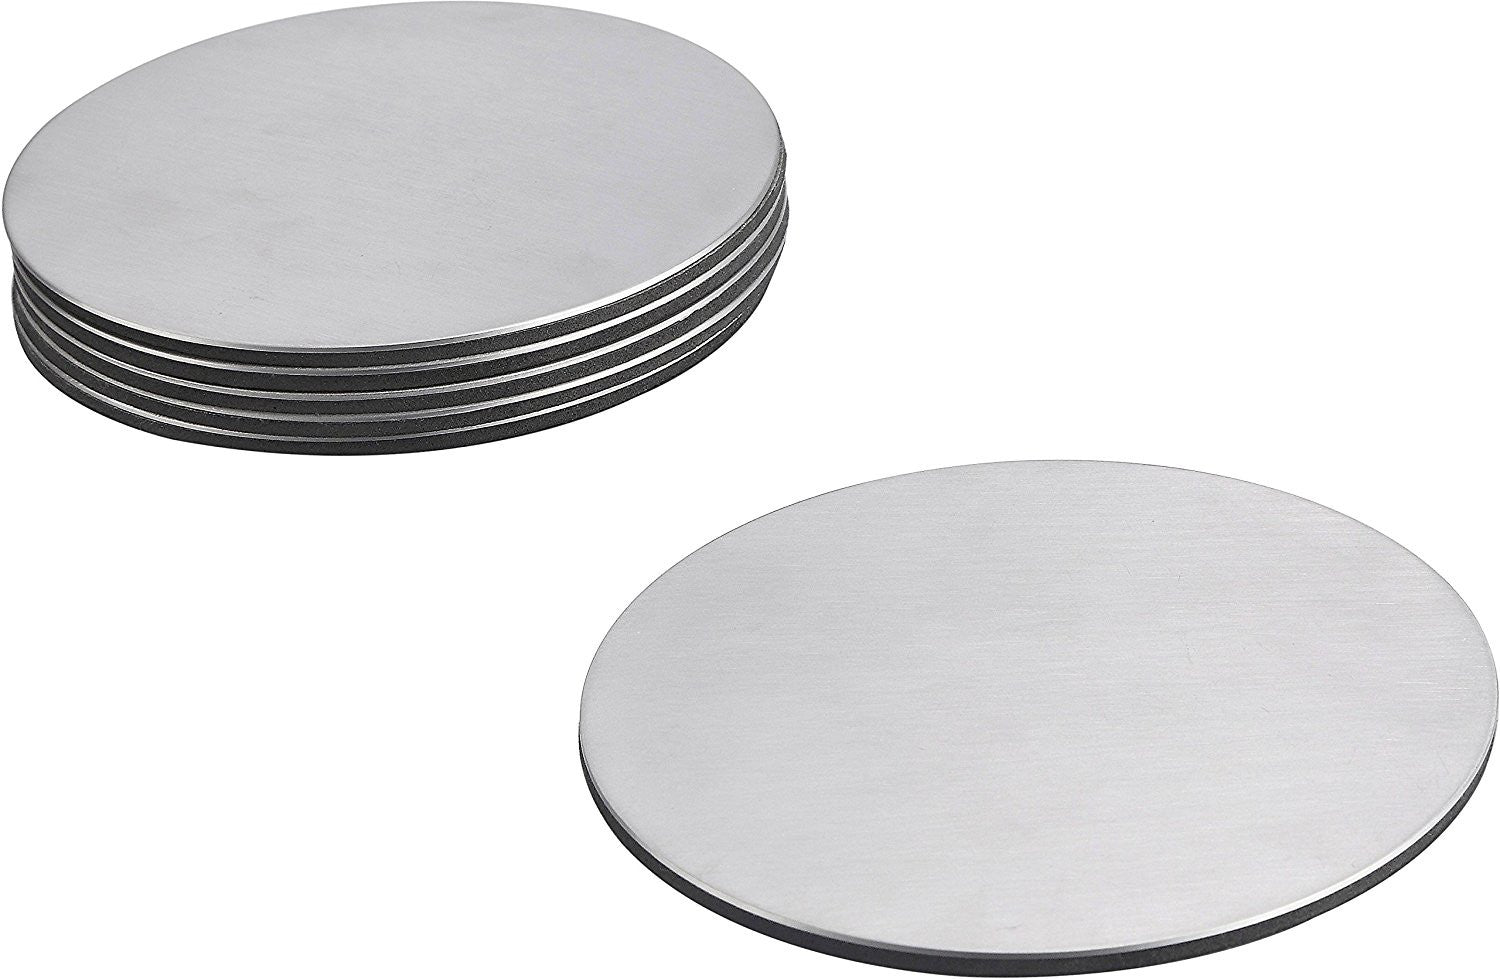 Pro Chef Kitchen Tools Stainless Steel Drink Coaster Set   Prevent Stains  And Scratches With 6 Round Table Coasters For Glasses, Bar Drinks, Mugs, ...